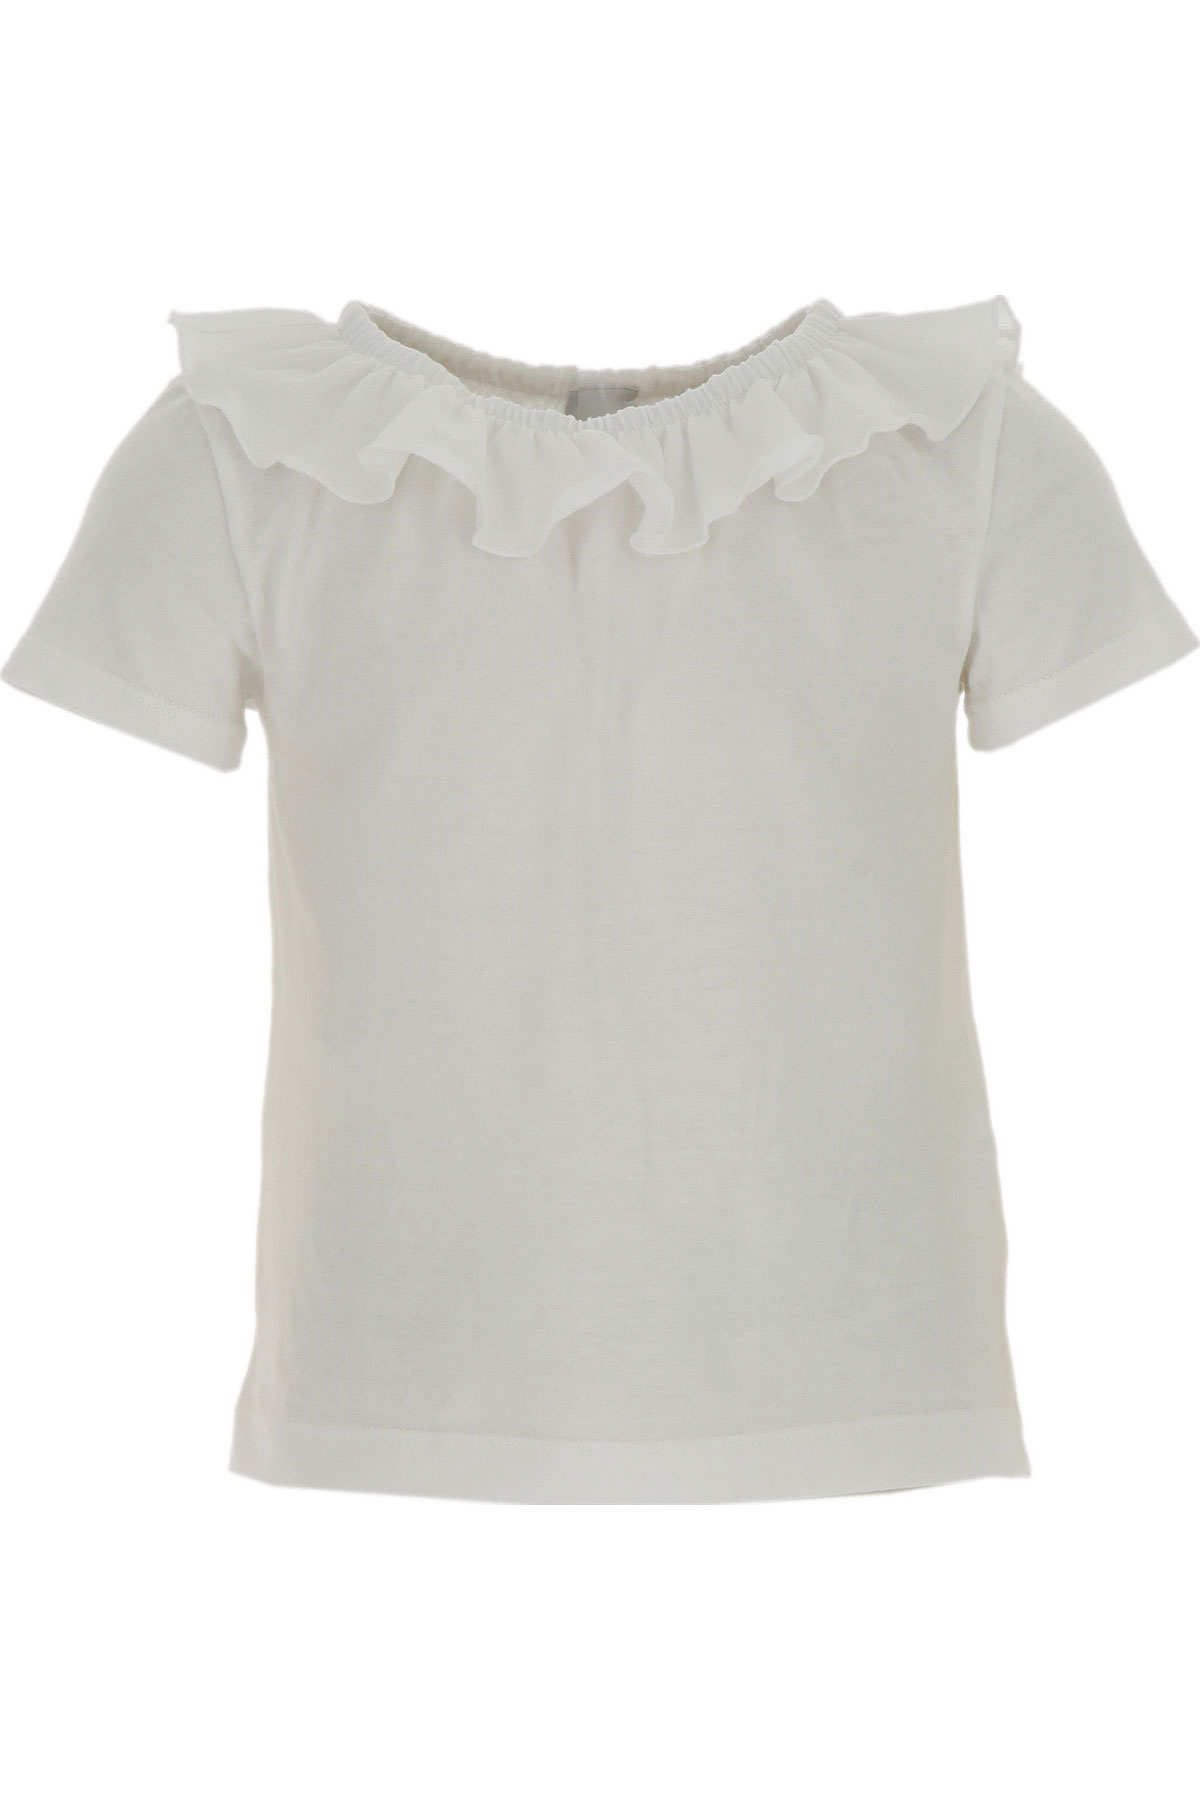 Le Petit Coco Kids T-Shirt for Girls On Sale, White, Organic Cotton, 2019, 10Y 4Y 6Y 8Y